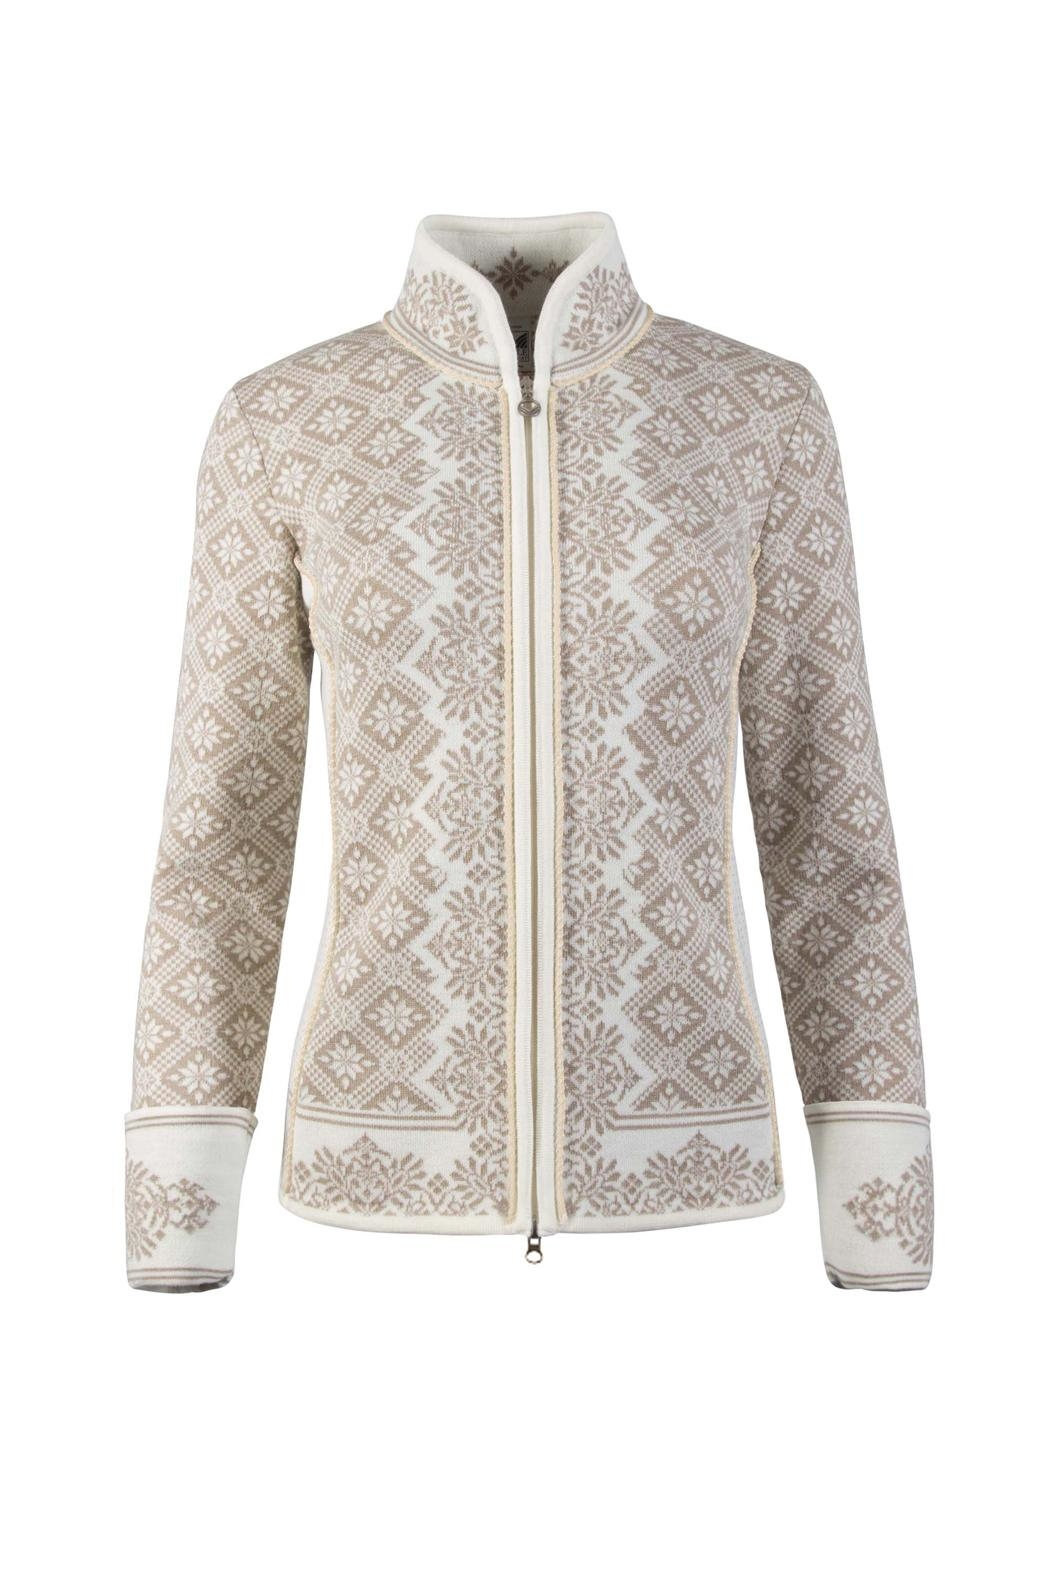 Dale of Norway Christiania Cardigan - Front Full Image